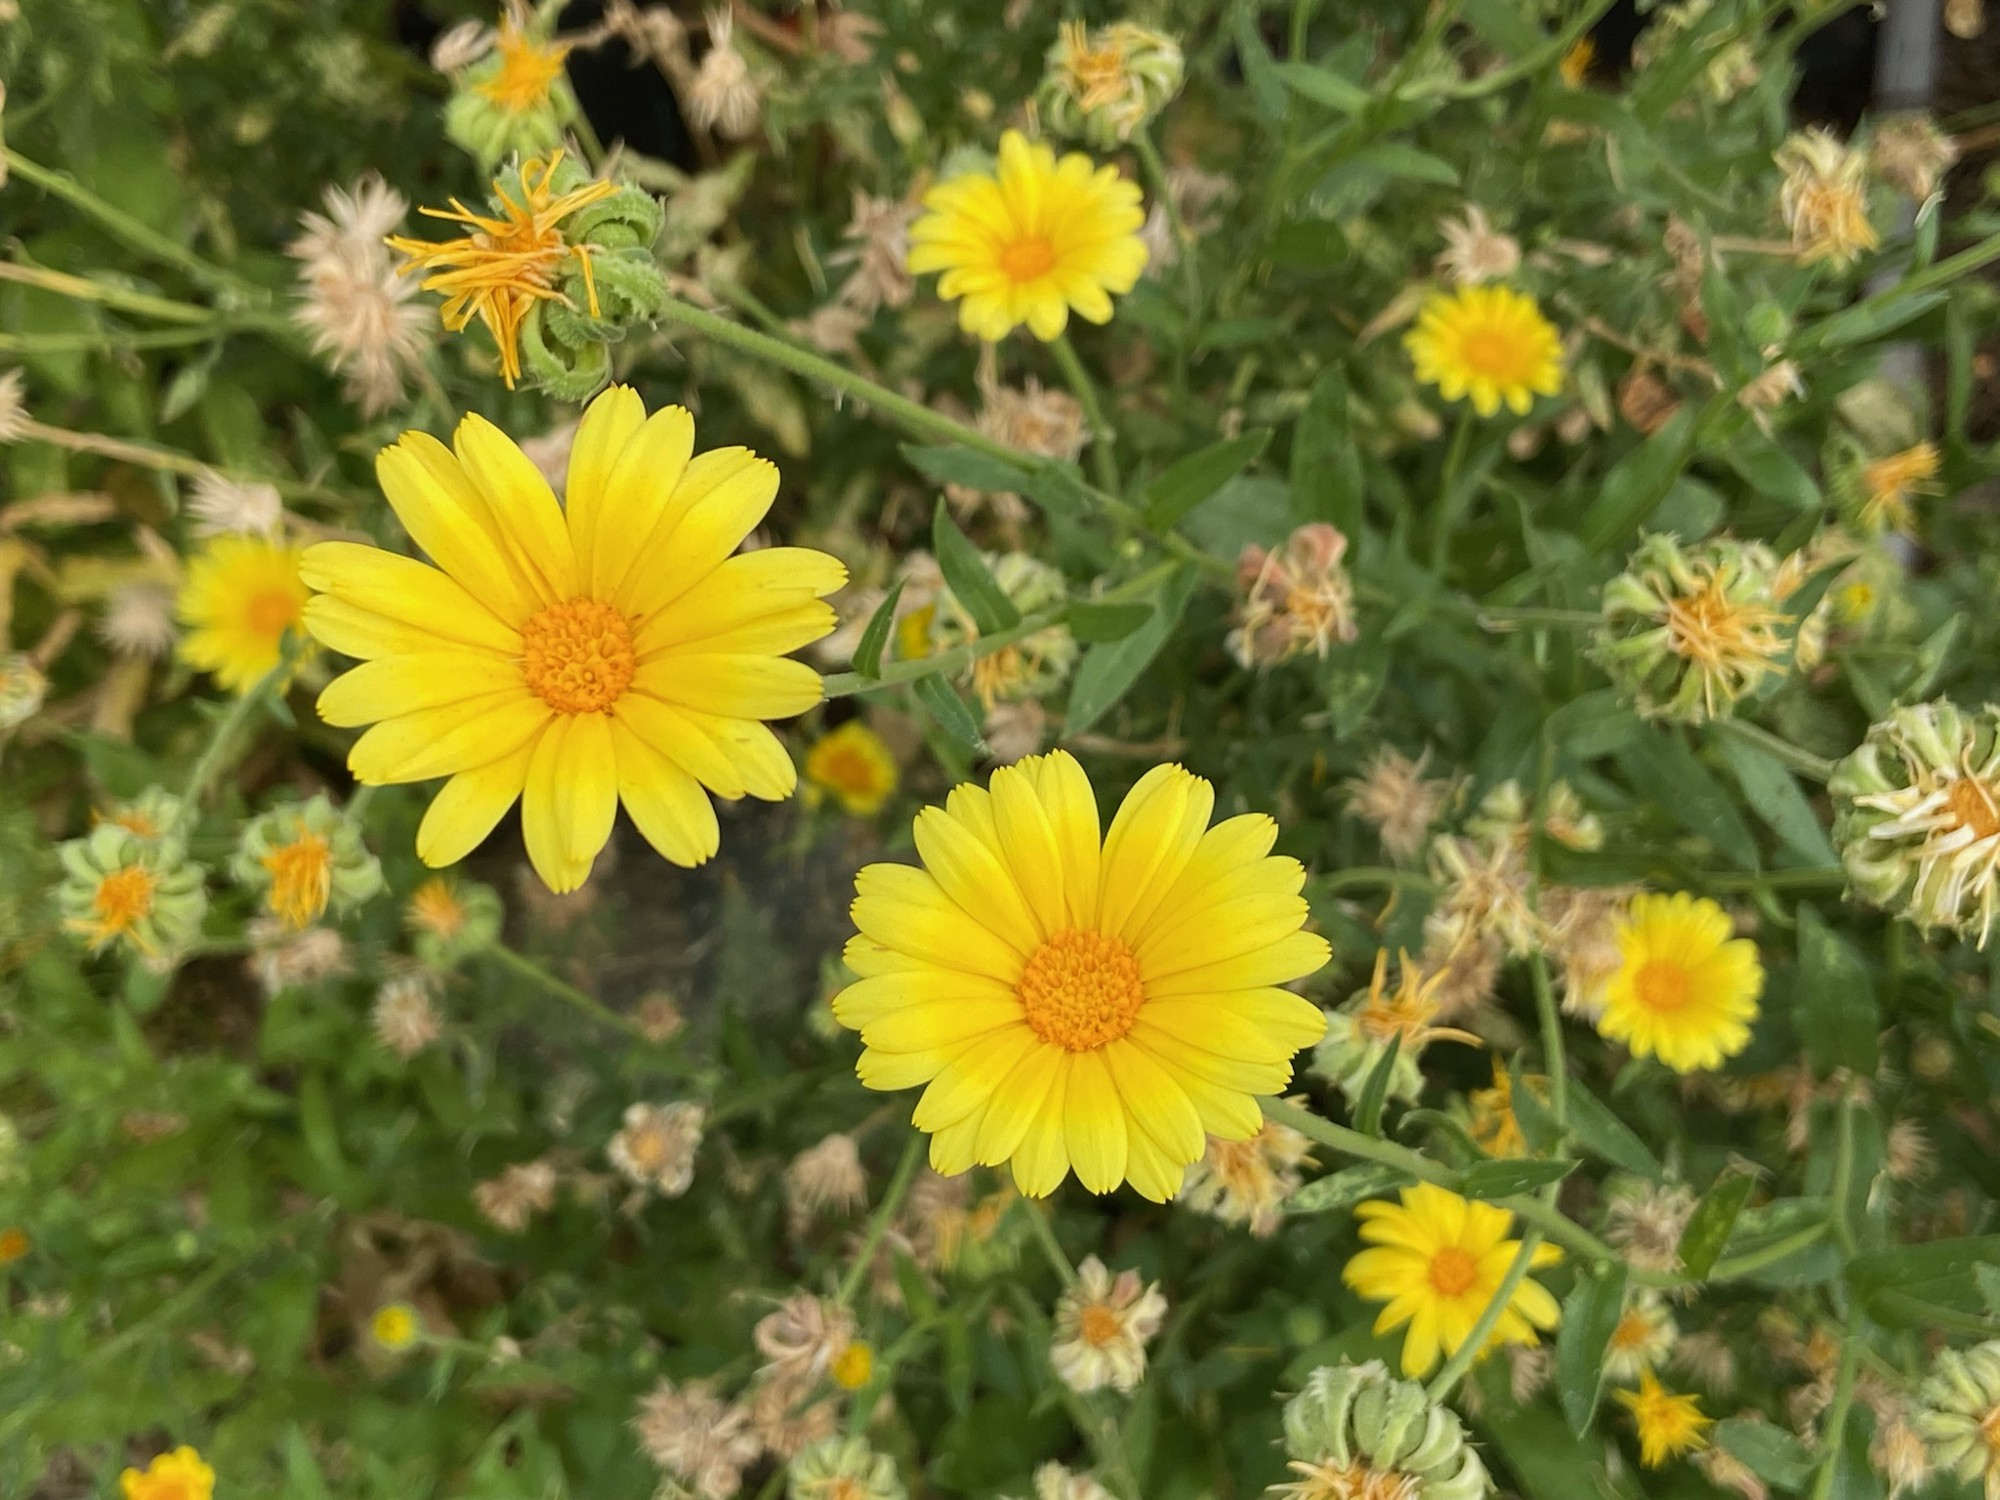 Two bright yellow flowers against a yellow and green background.